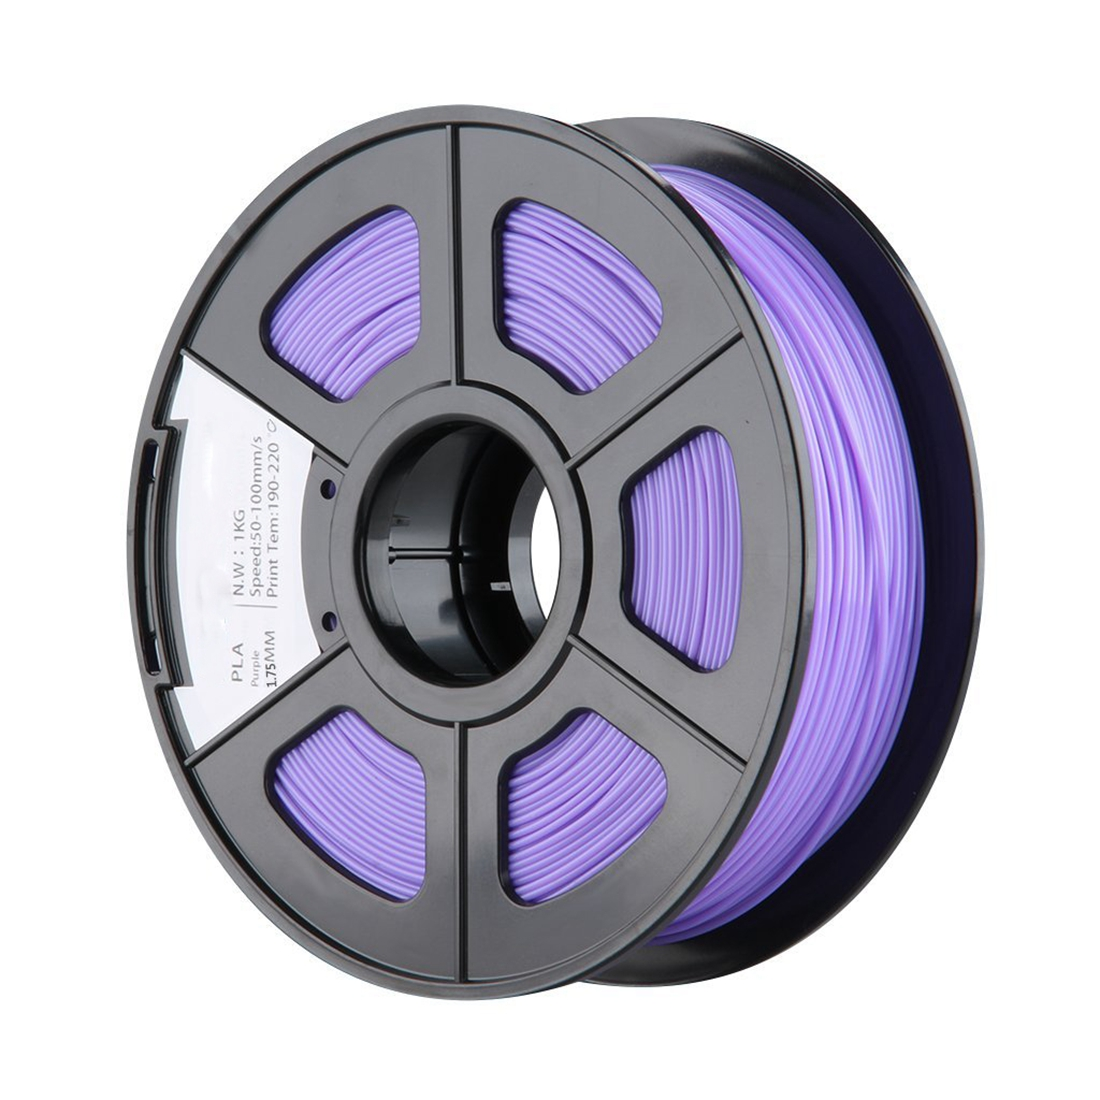 New 1.75mm PLA 3D Printer Filament - 1kg Spool (2.2 lbs) - Dimensional Accuracy +/- 0.02mm - Multi Colors Available (Purple)